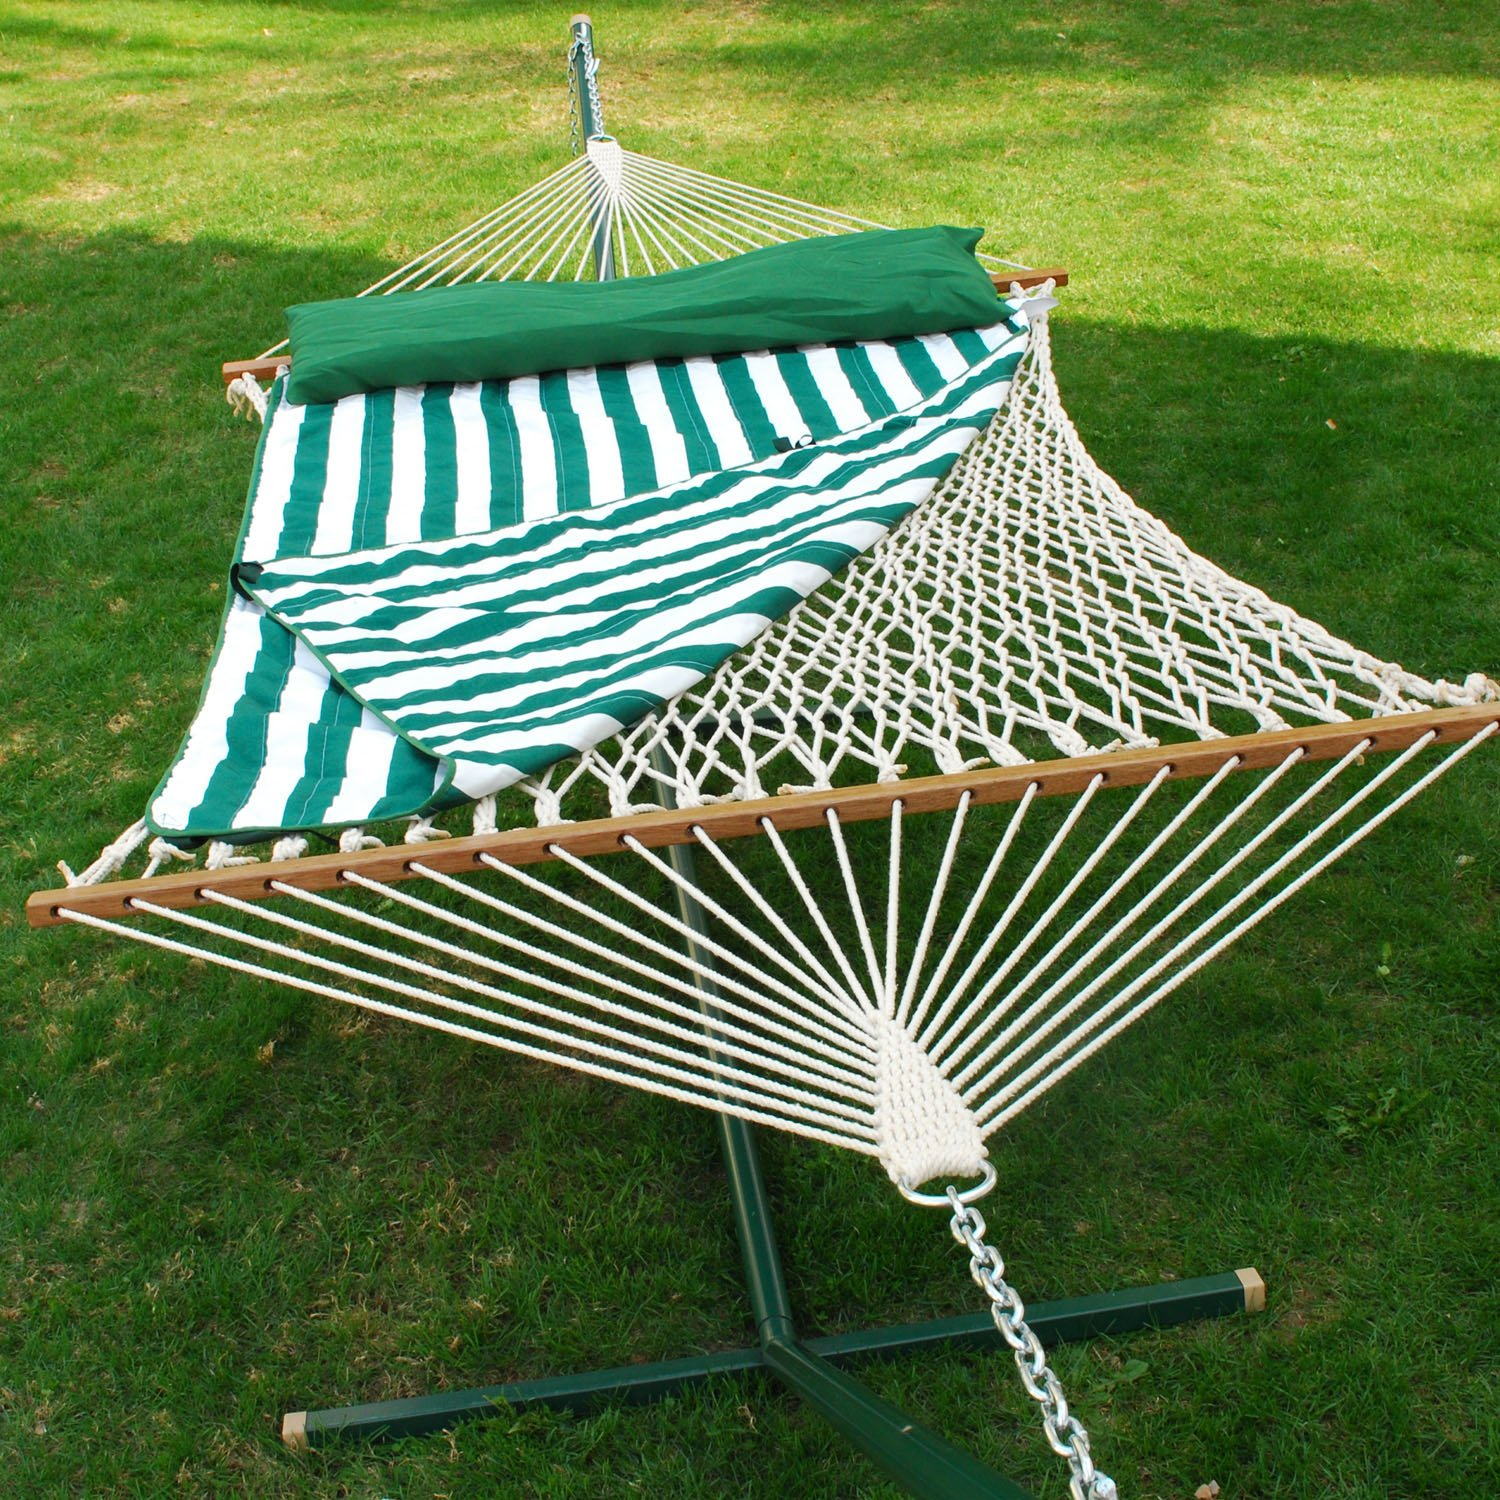 and with sunnydaze cotton rope wooden stand combo cdwhws spreader curved double hammock bars wide person